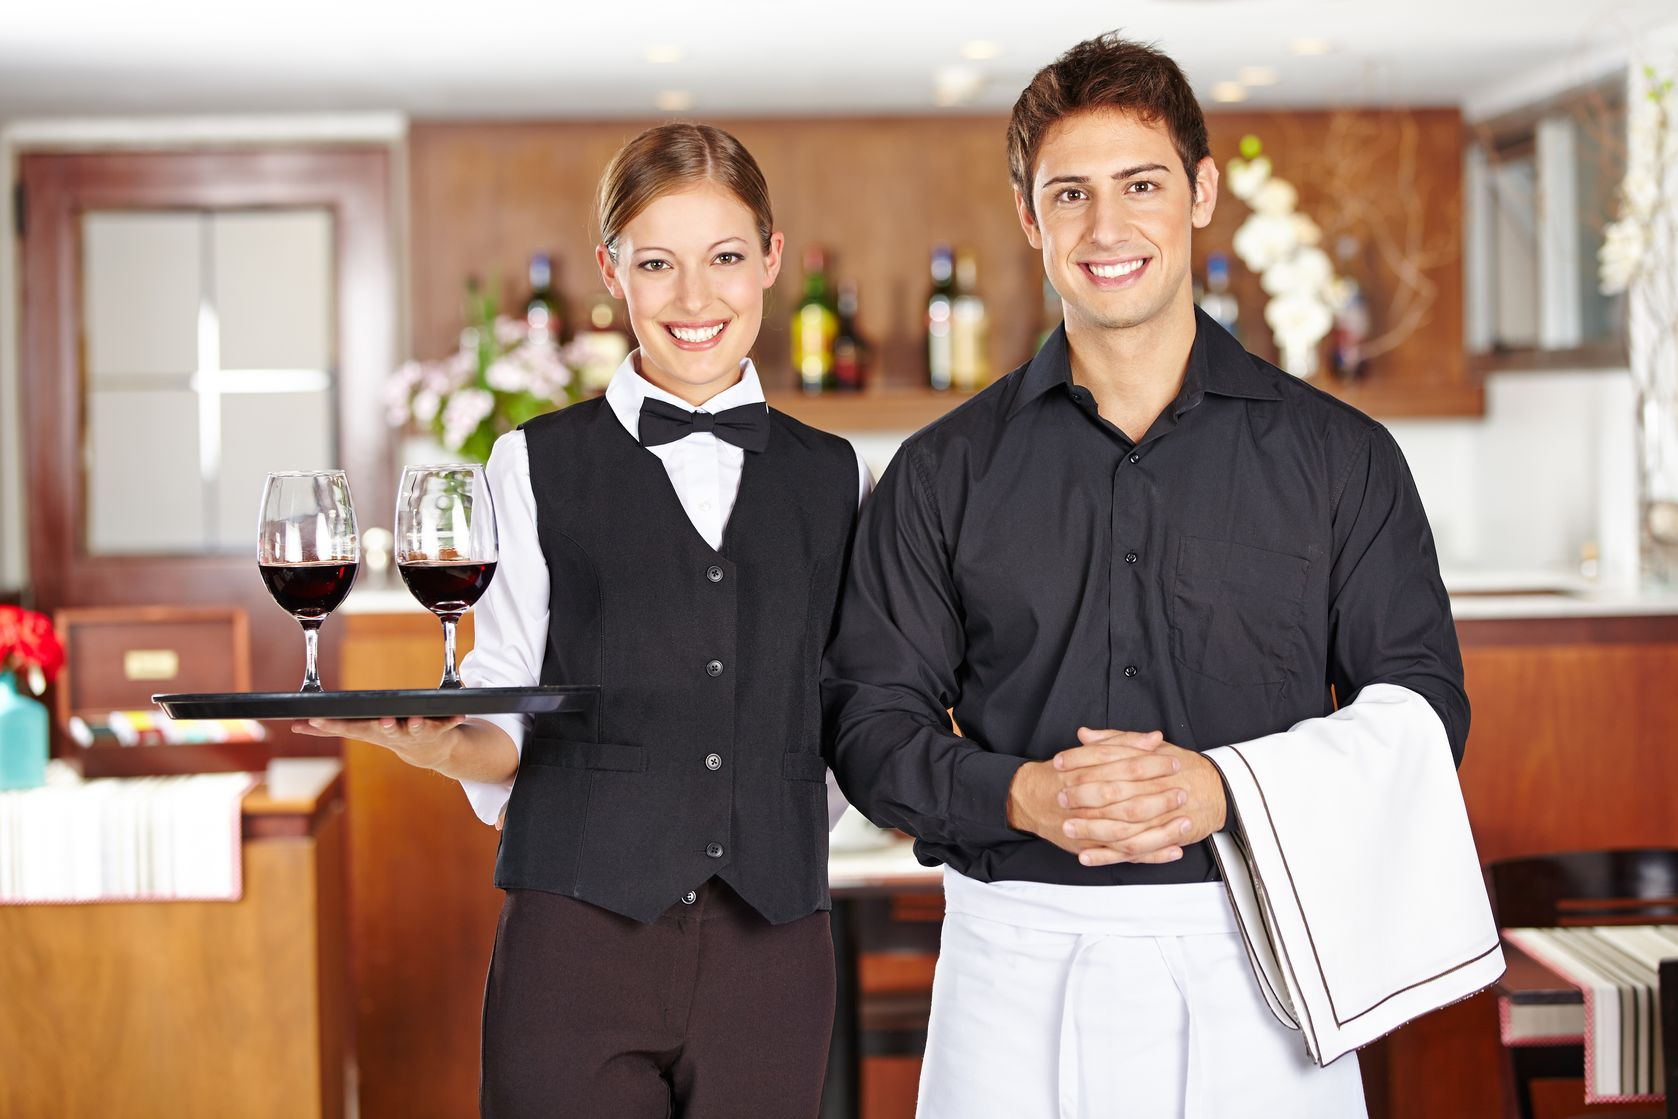 Hospitality and Catering Business for sale in Adelaide